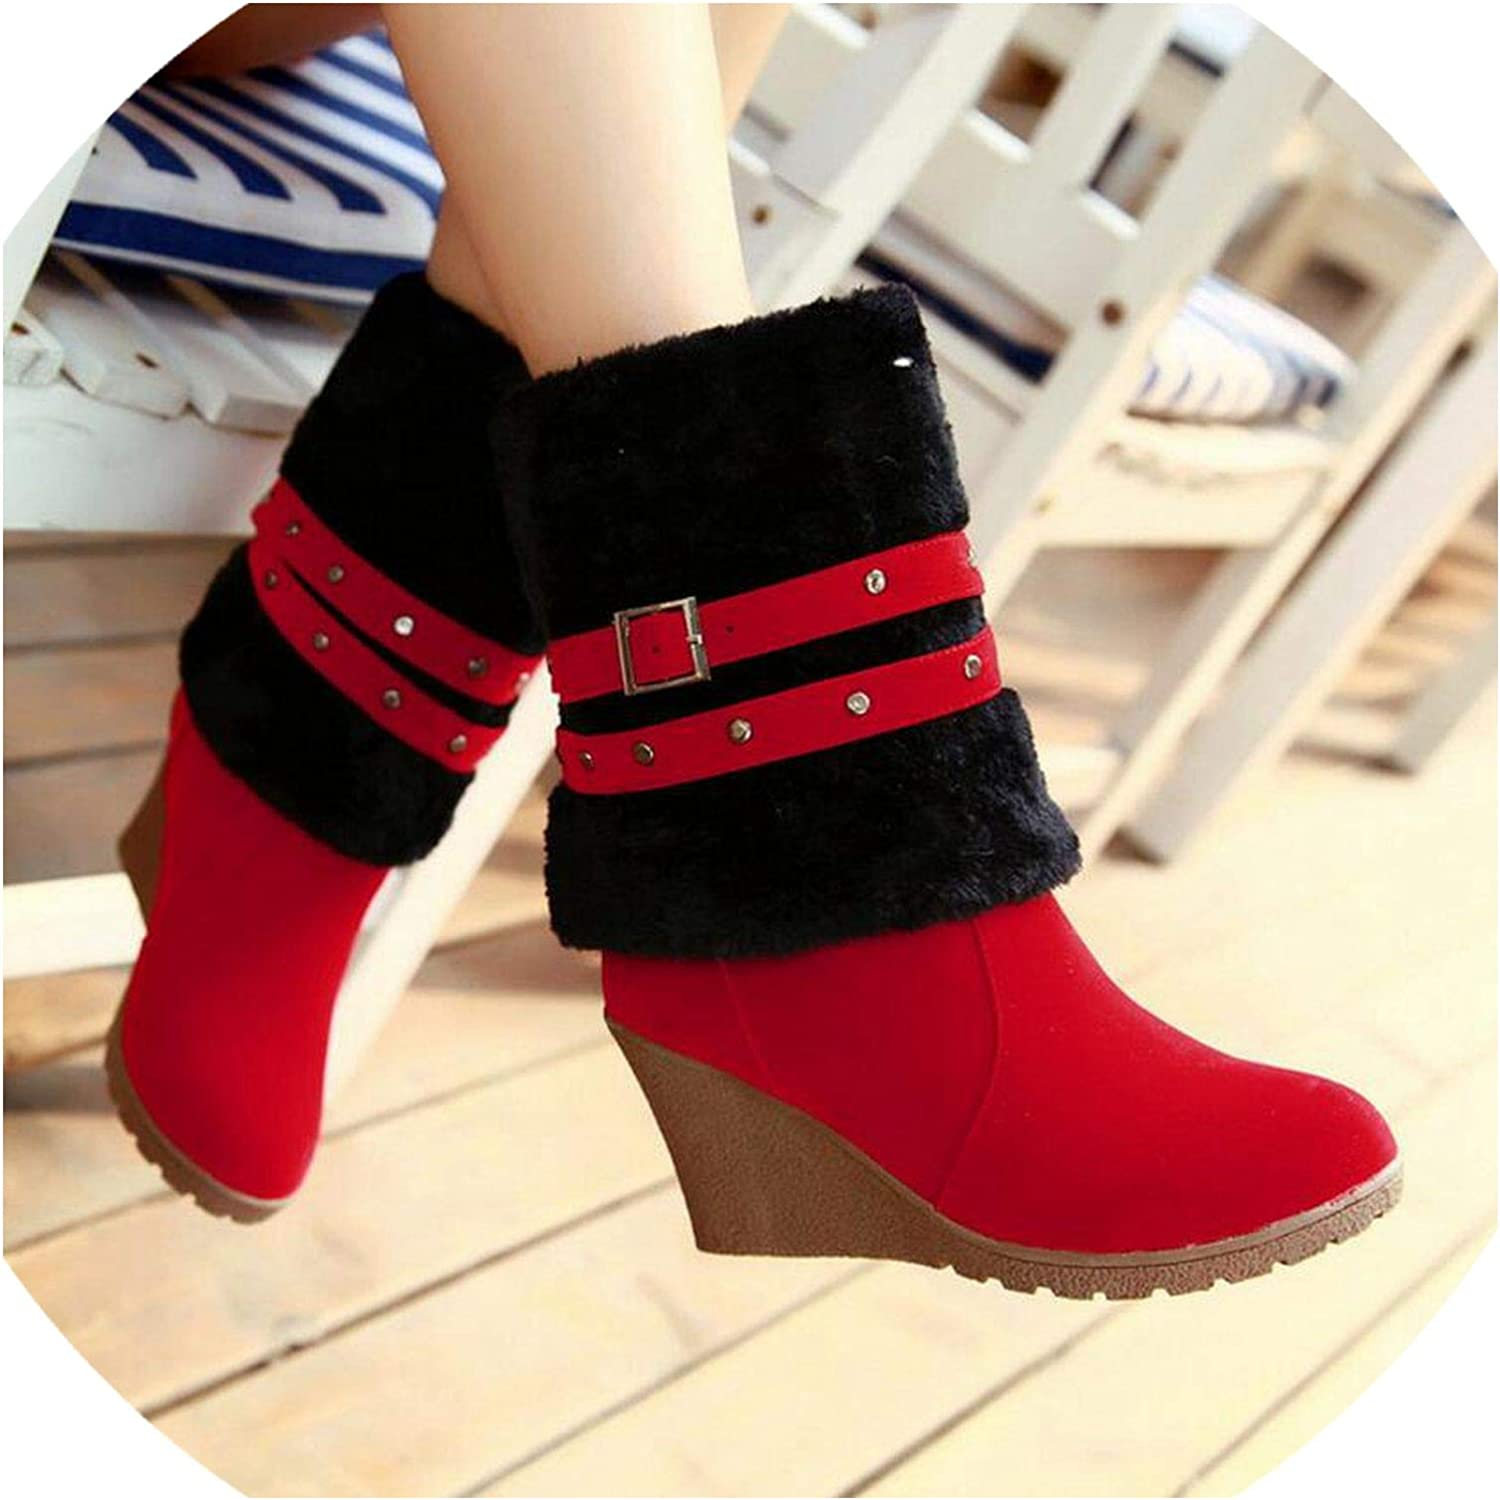 Fashion Frosted Suede Women Wedge Heels Long Boots High Boots